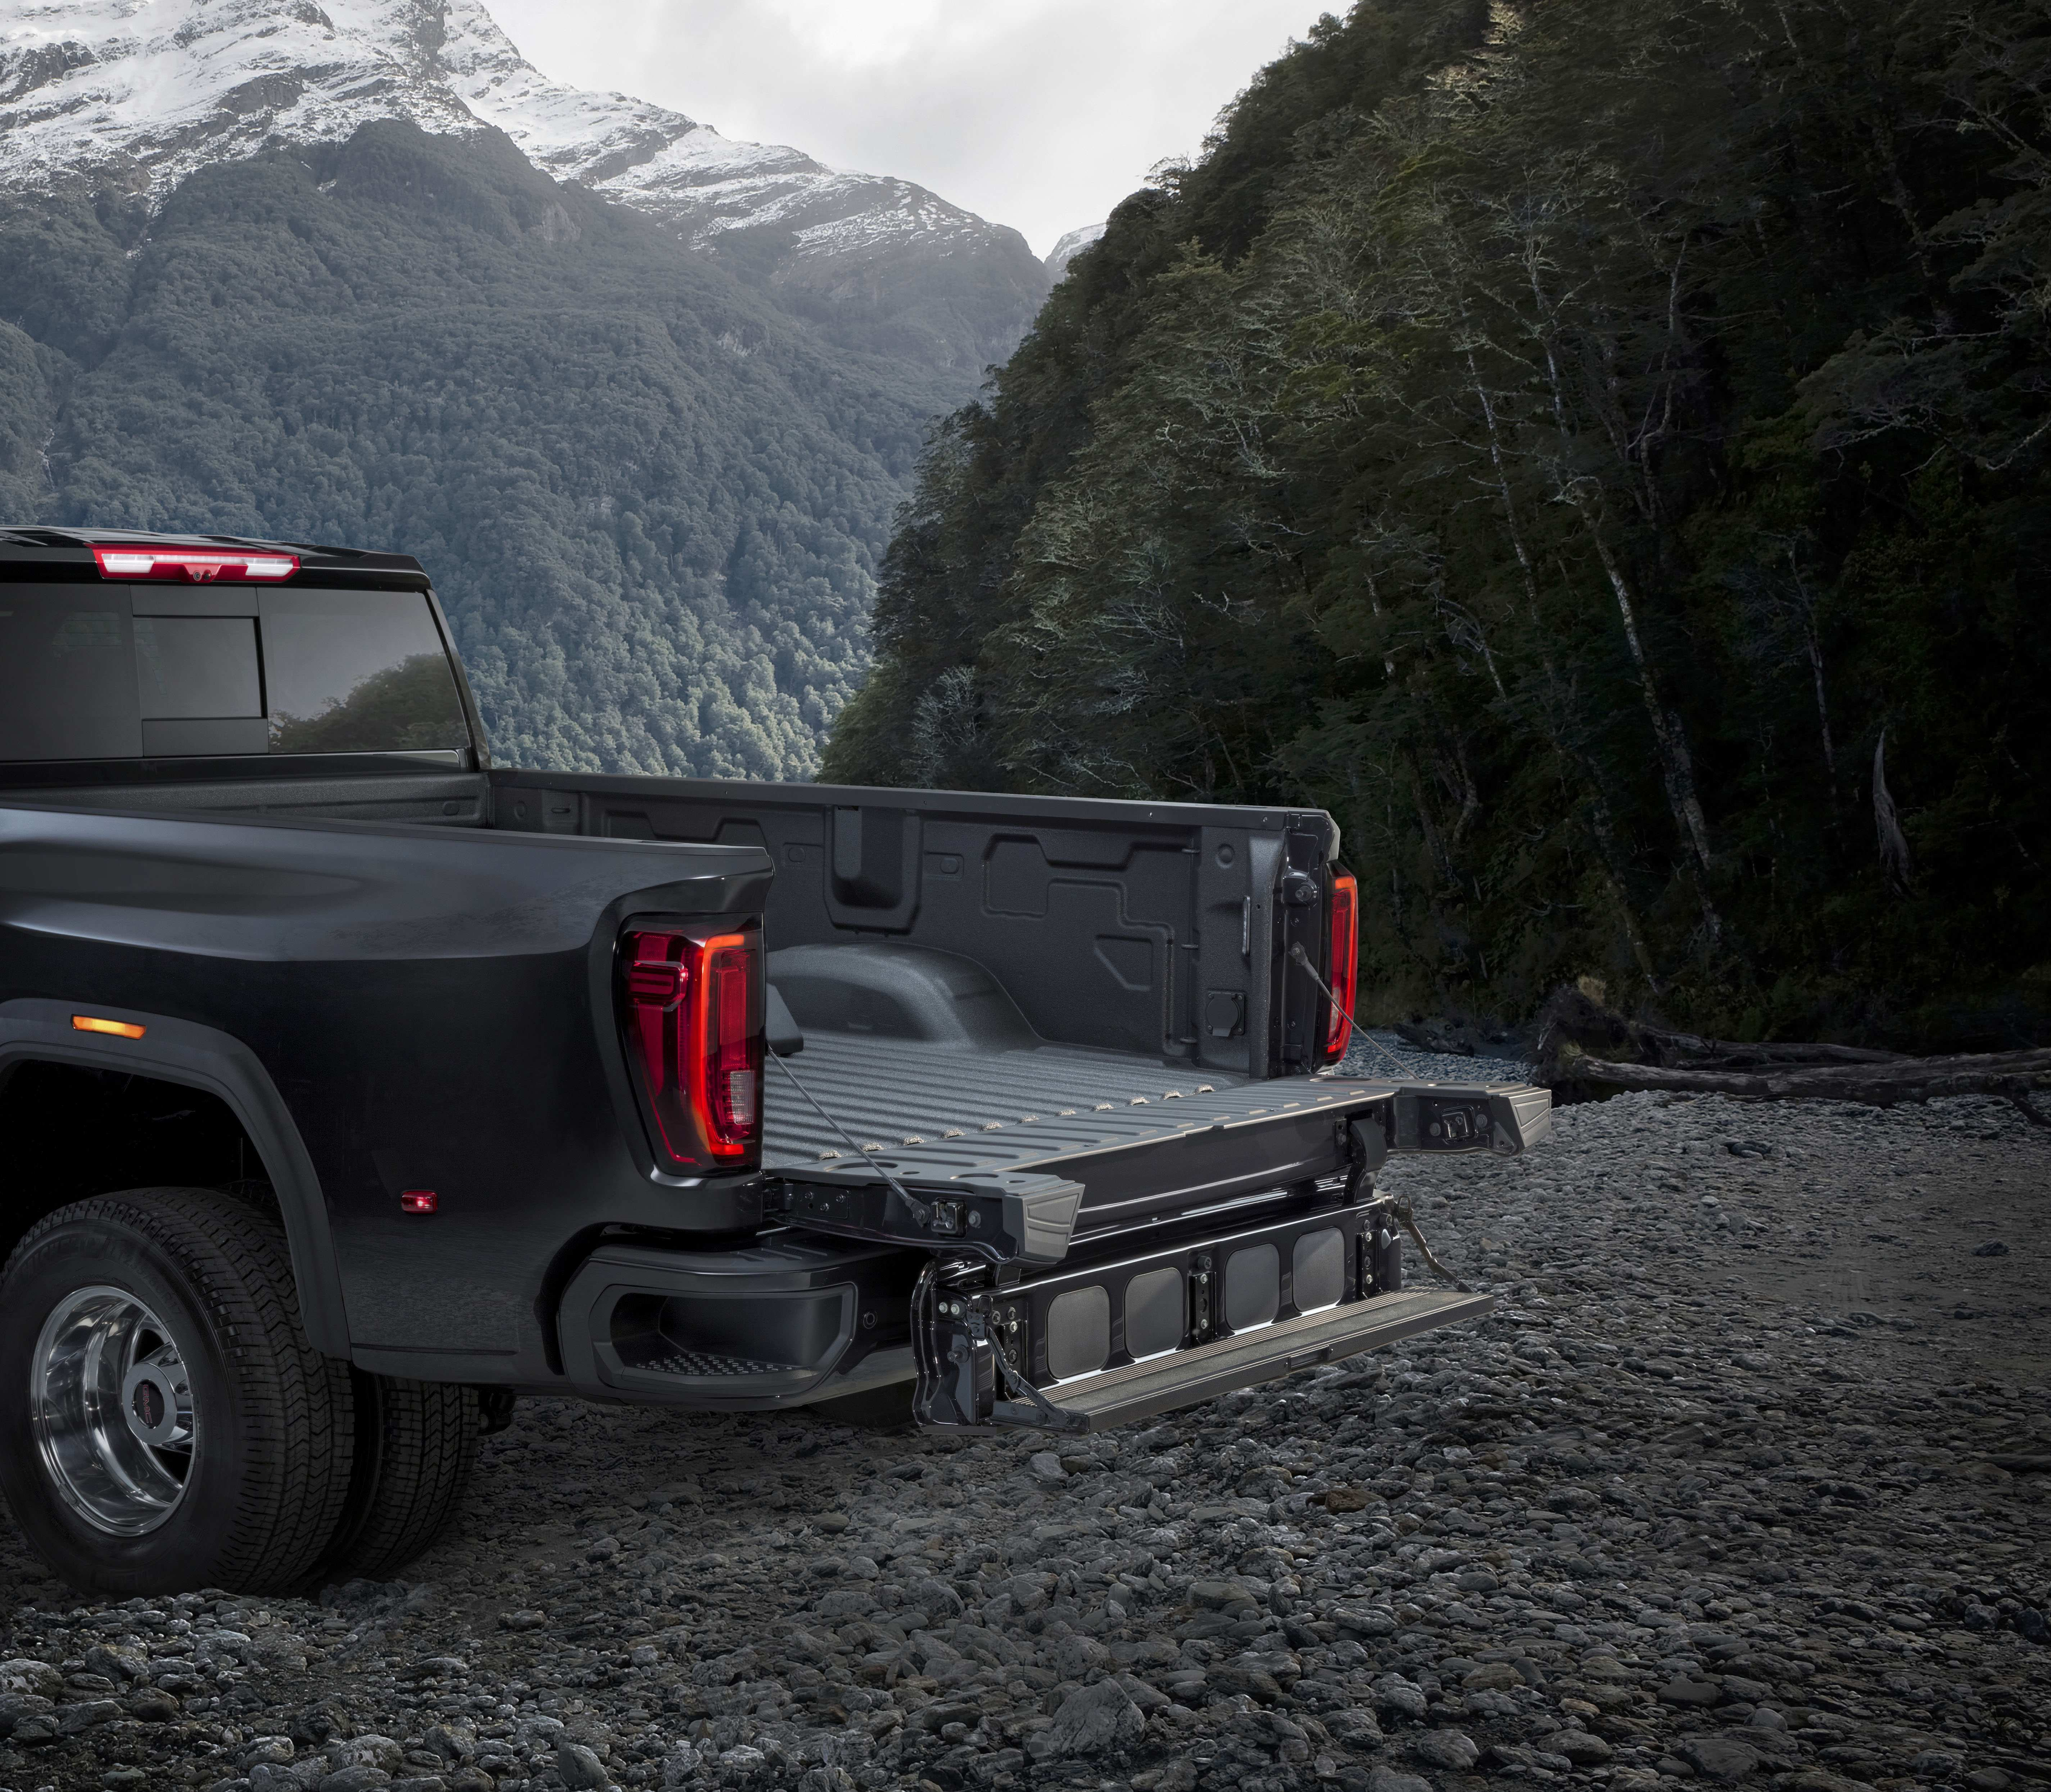 42 Concept of 2020 Gmc Sierra Hd Interior Performance and New Engine for 2020 Gmc Sierra Hd Interior